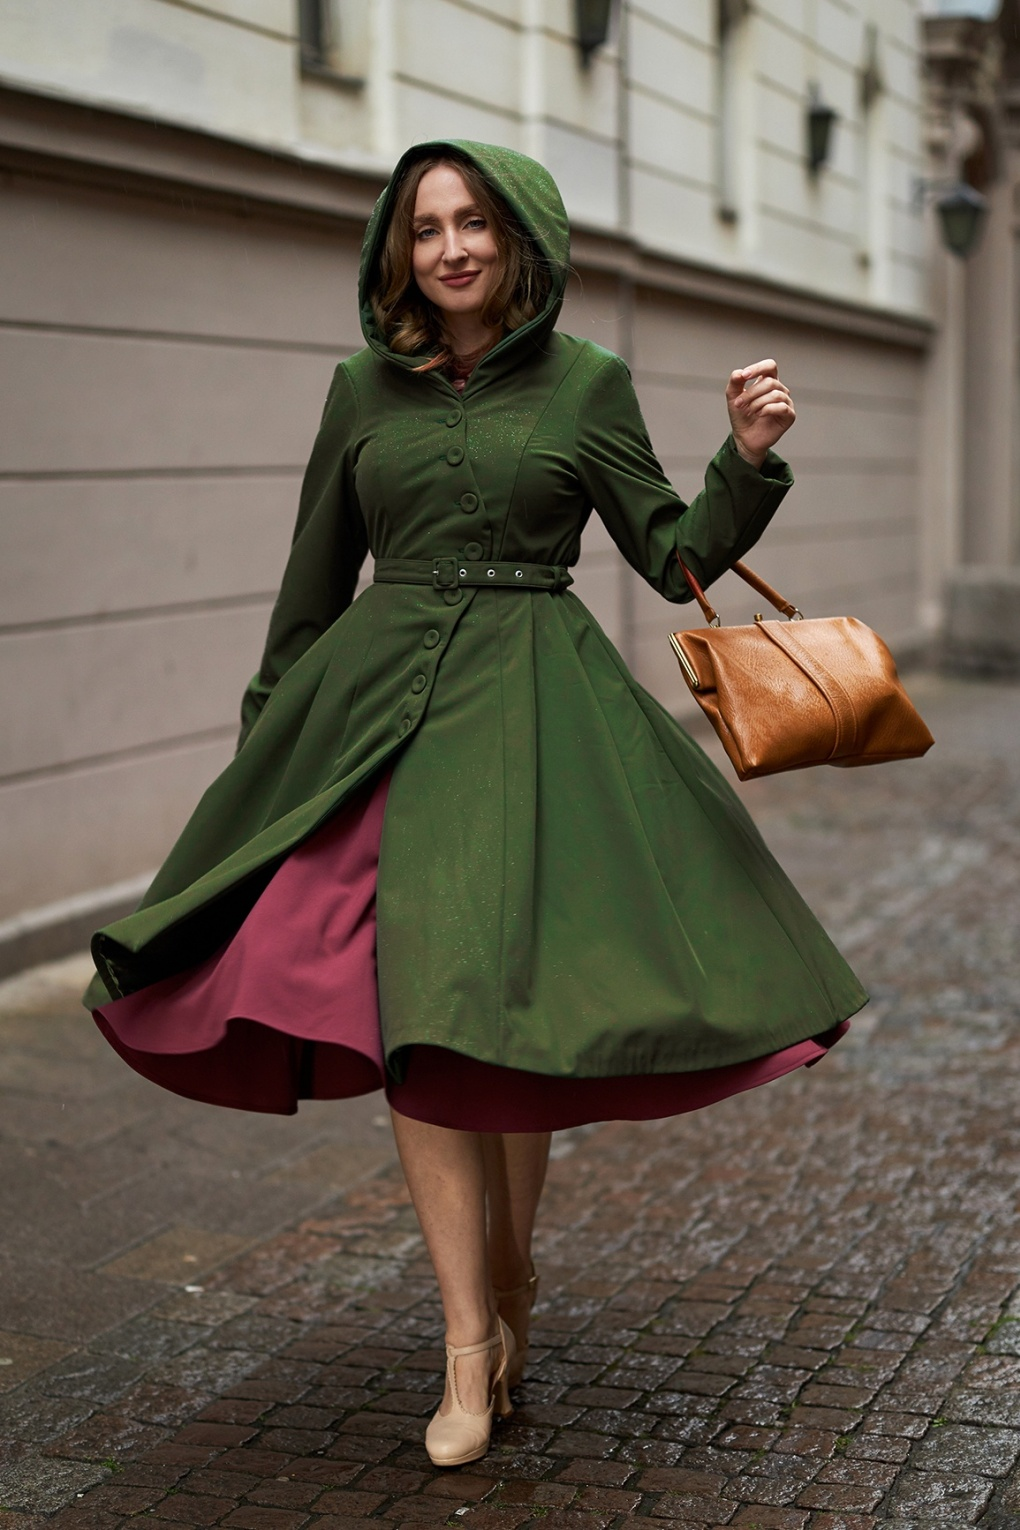 Vintage Coats & Jackets | Retro Coats and Jackets 50s Loris Olive Swing Trench Coat in Green £161.51 AT vintagedancer.com